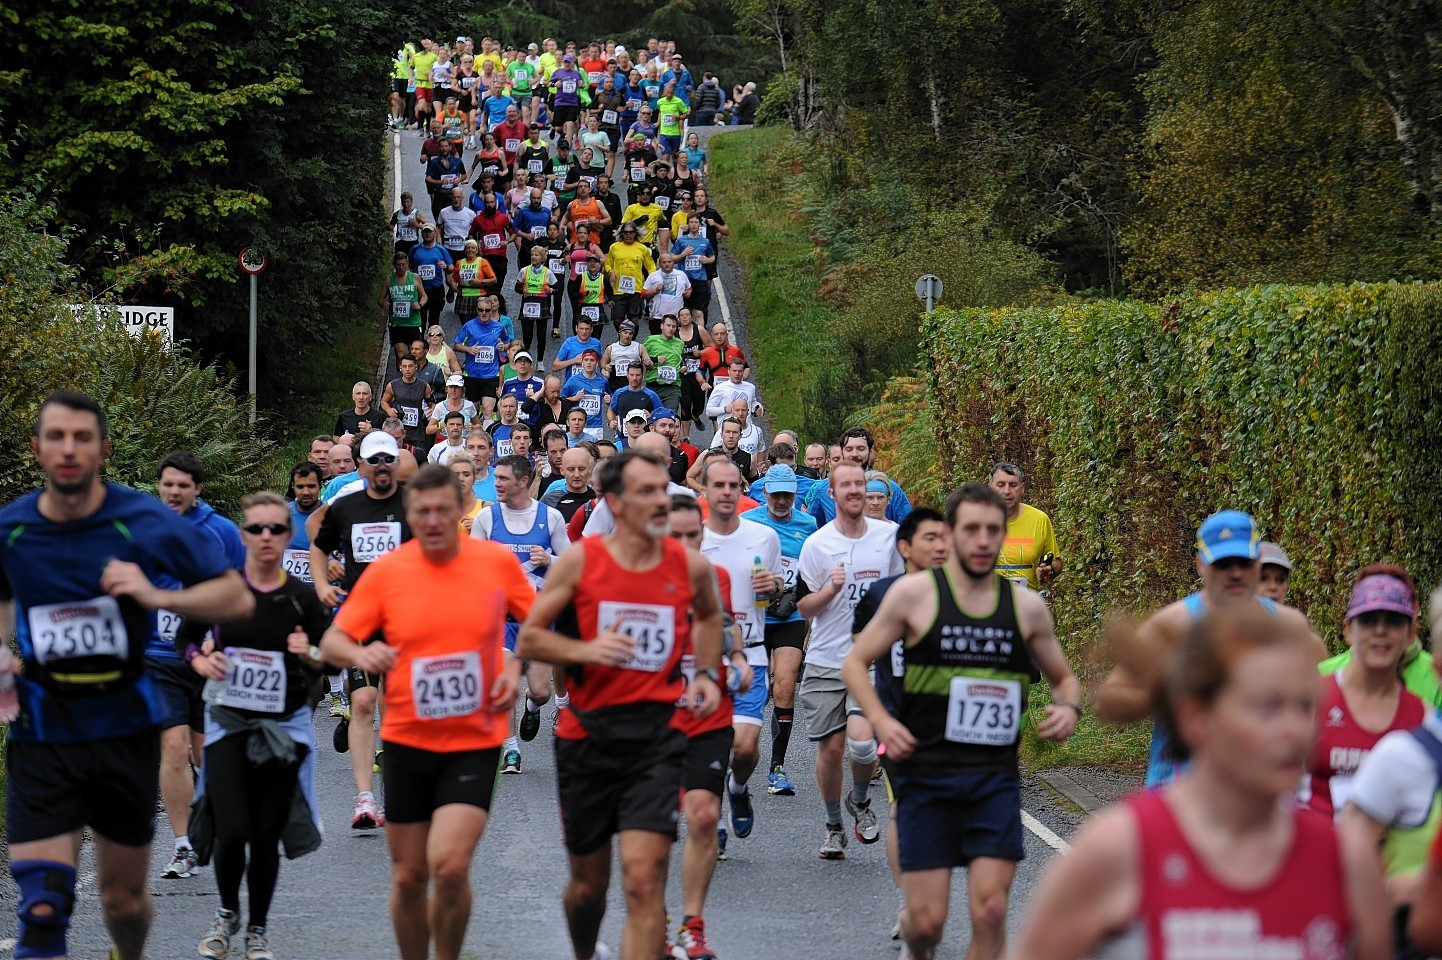 Runners take on the Loch Ness Marathon